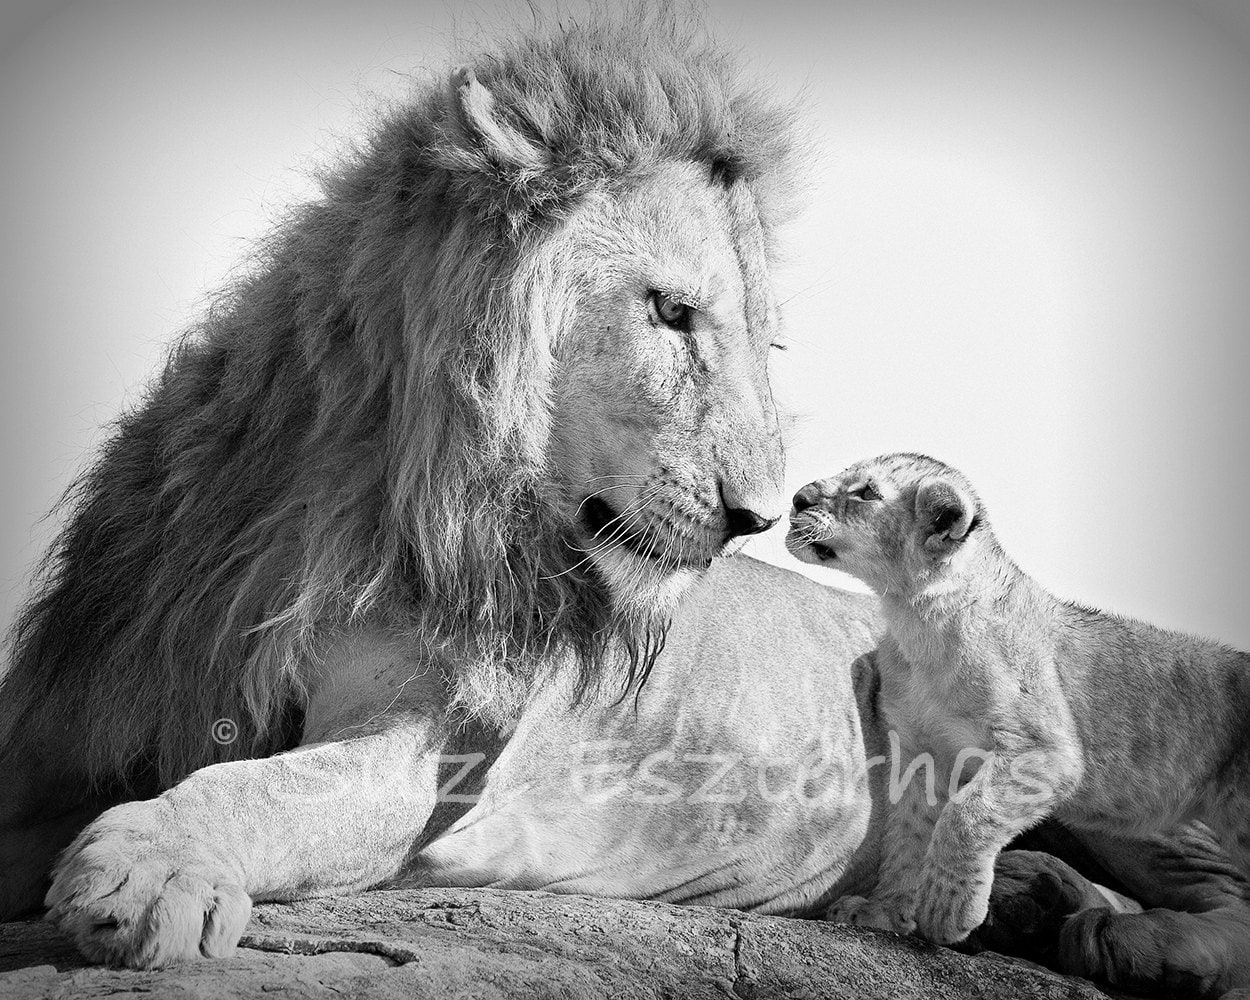 Animals Black And White Elephants 10000 Lions Big Cats: Black And White Animal Photography